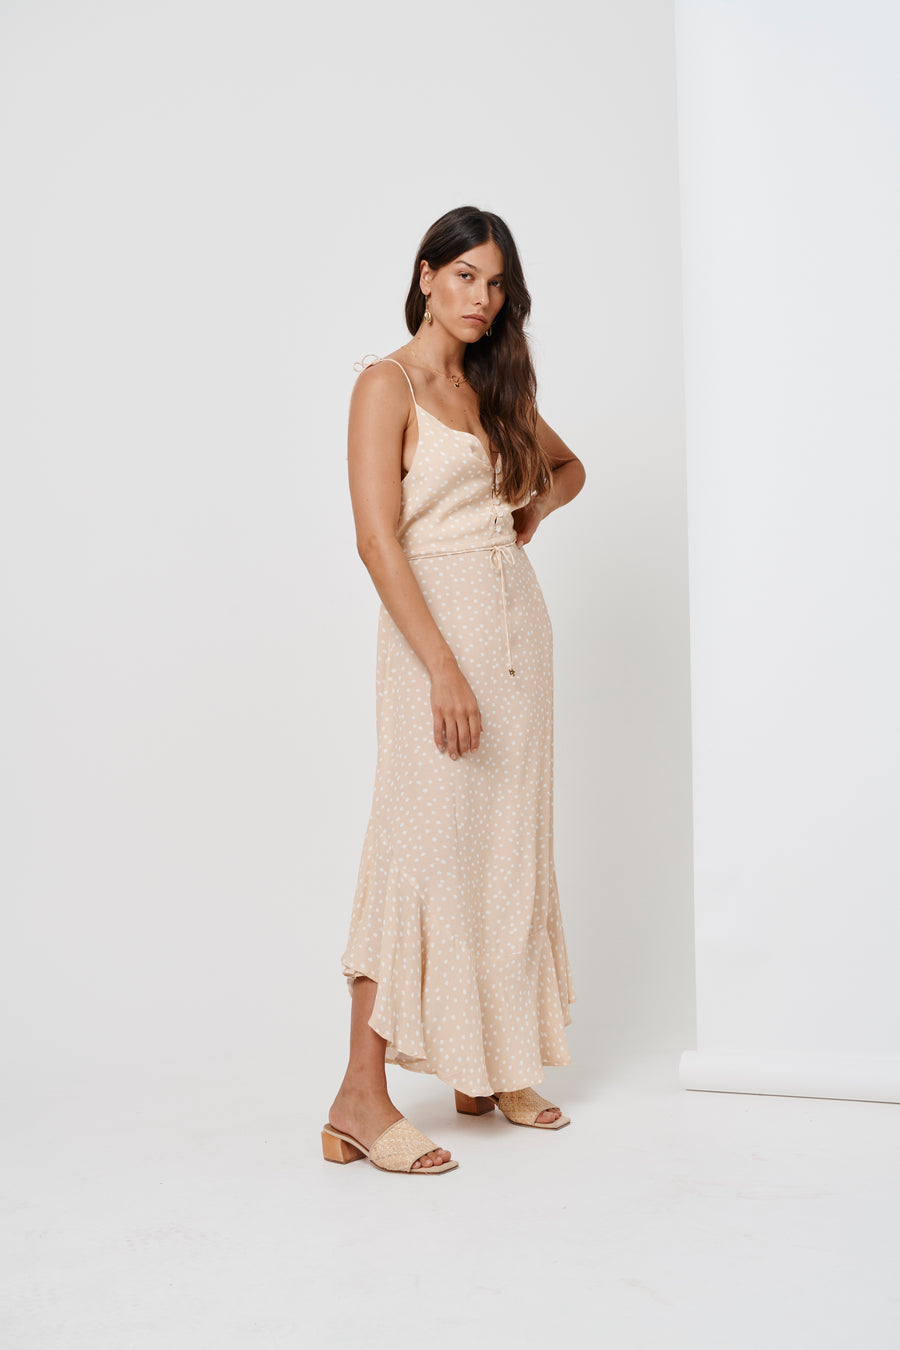 Kivari Jolie Maxi Dress Nude Polka